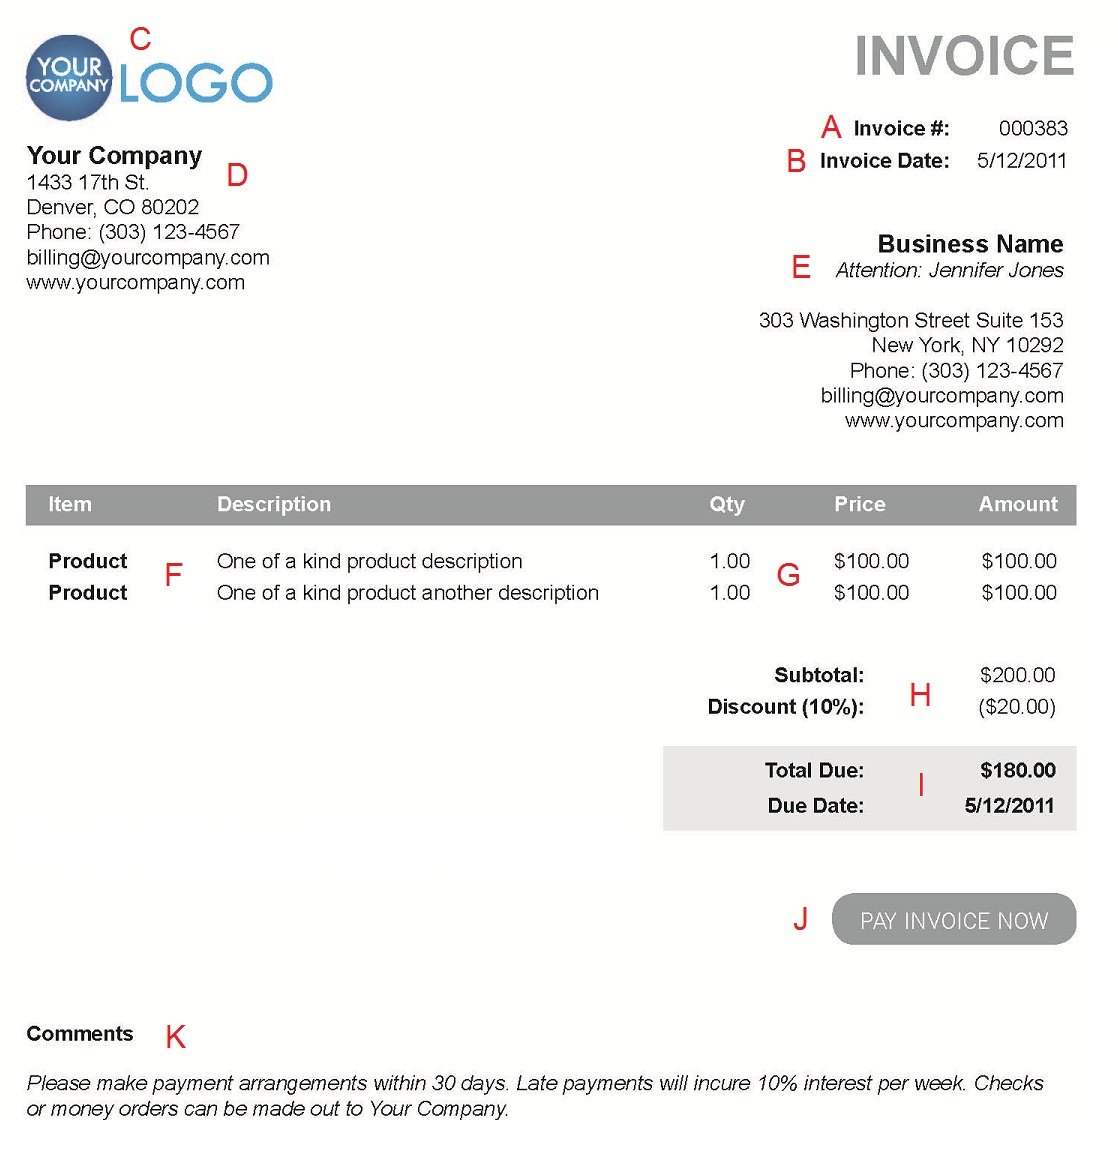 Usdgus  Nice The  Different Sections Of An Electronic Payment Invoice With Hot A  With Archaic Lic Online Premium Receipt Also Email Receipt Template Free In Addition Non Profit Tax Receipt And Ipad Receipt Scanner As Well As Receipt Of Money Template Additionally Star Micronics Receipt Printers From Paysimplecom With Usdgus  Hot The  Different Sections Of An Electronic Payment Invoice With Archaic A  And Nice Lic Online Premium Receipt Also Email Receipt Template Free In Addition Non Profit Tax Receipt From Paysimplecom